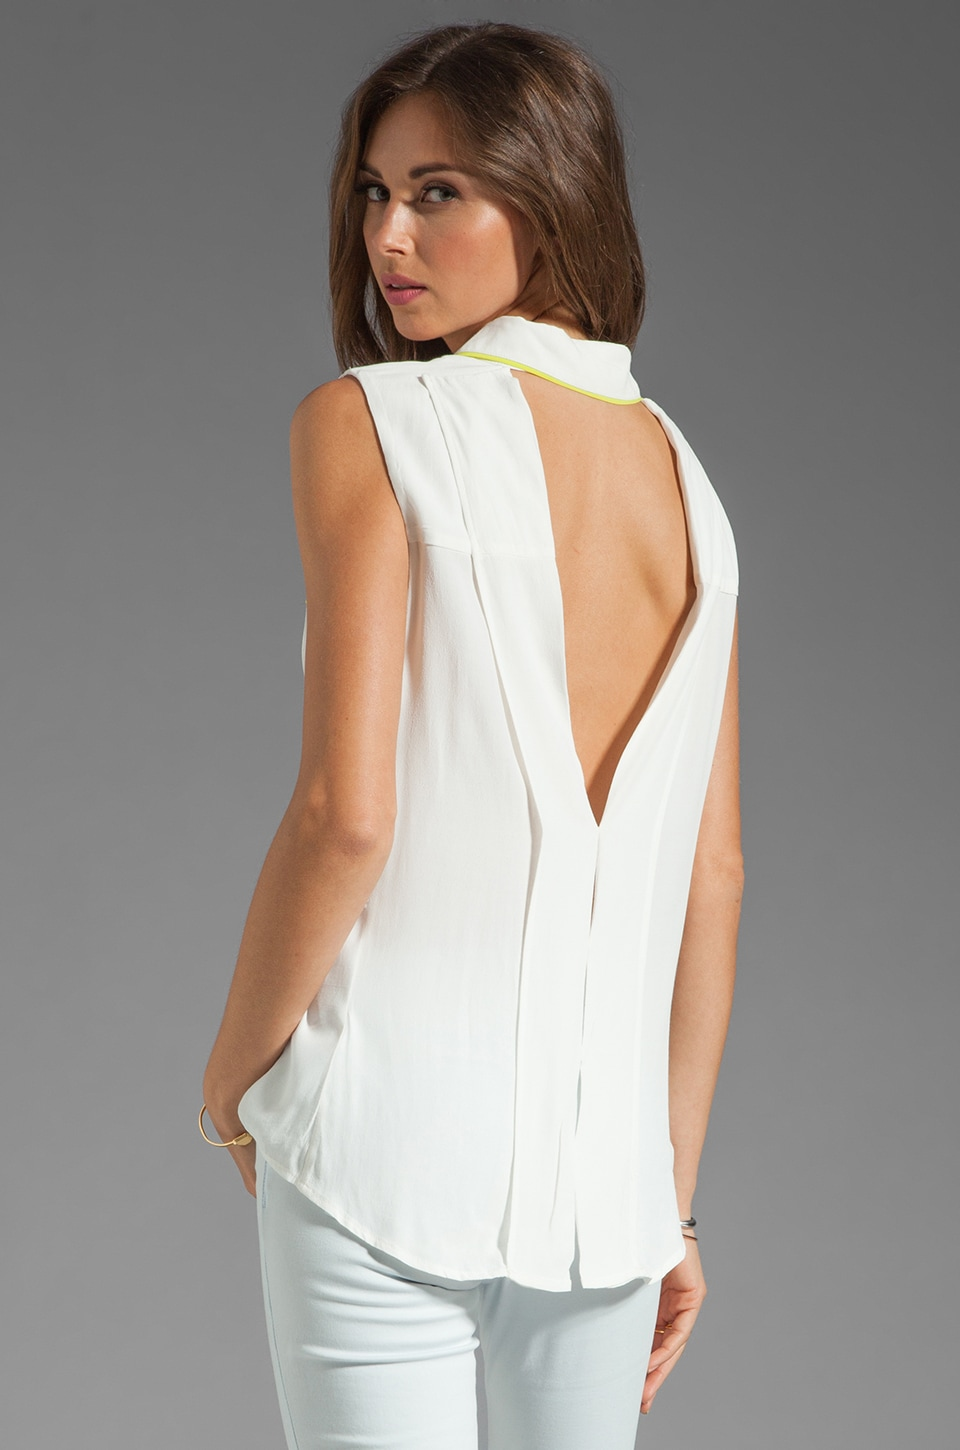 Bardot Piper Fold Back Shirt in White